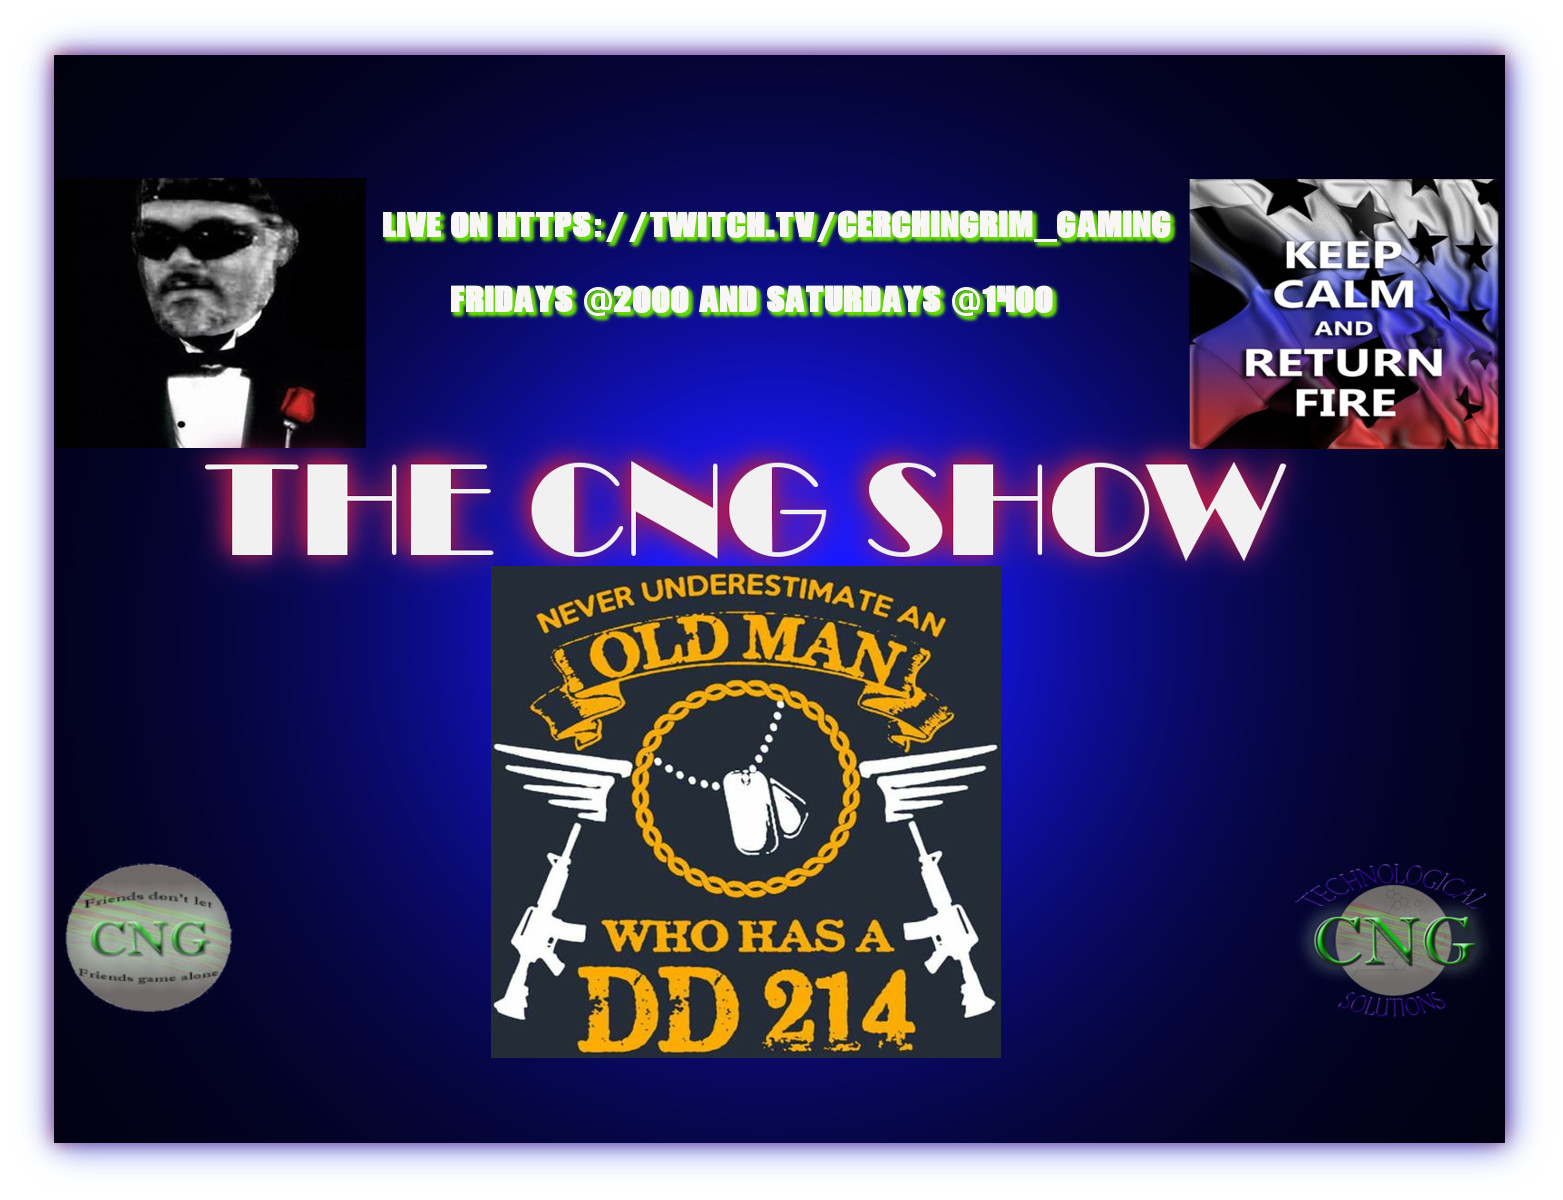 The CNG Show